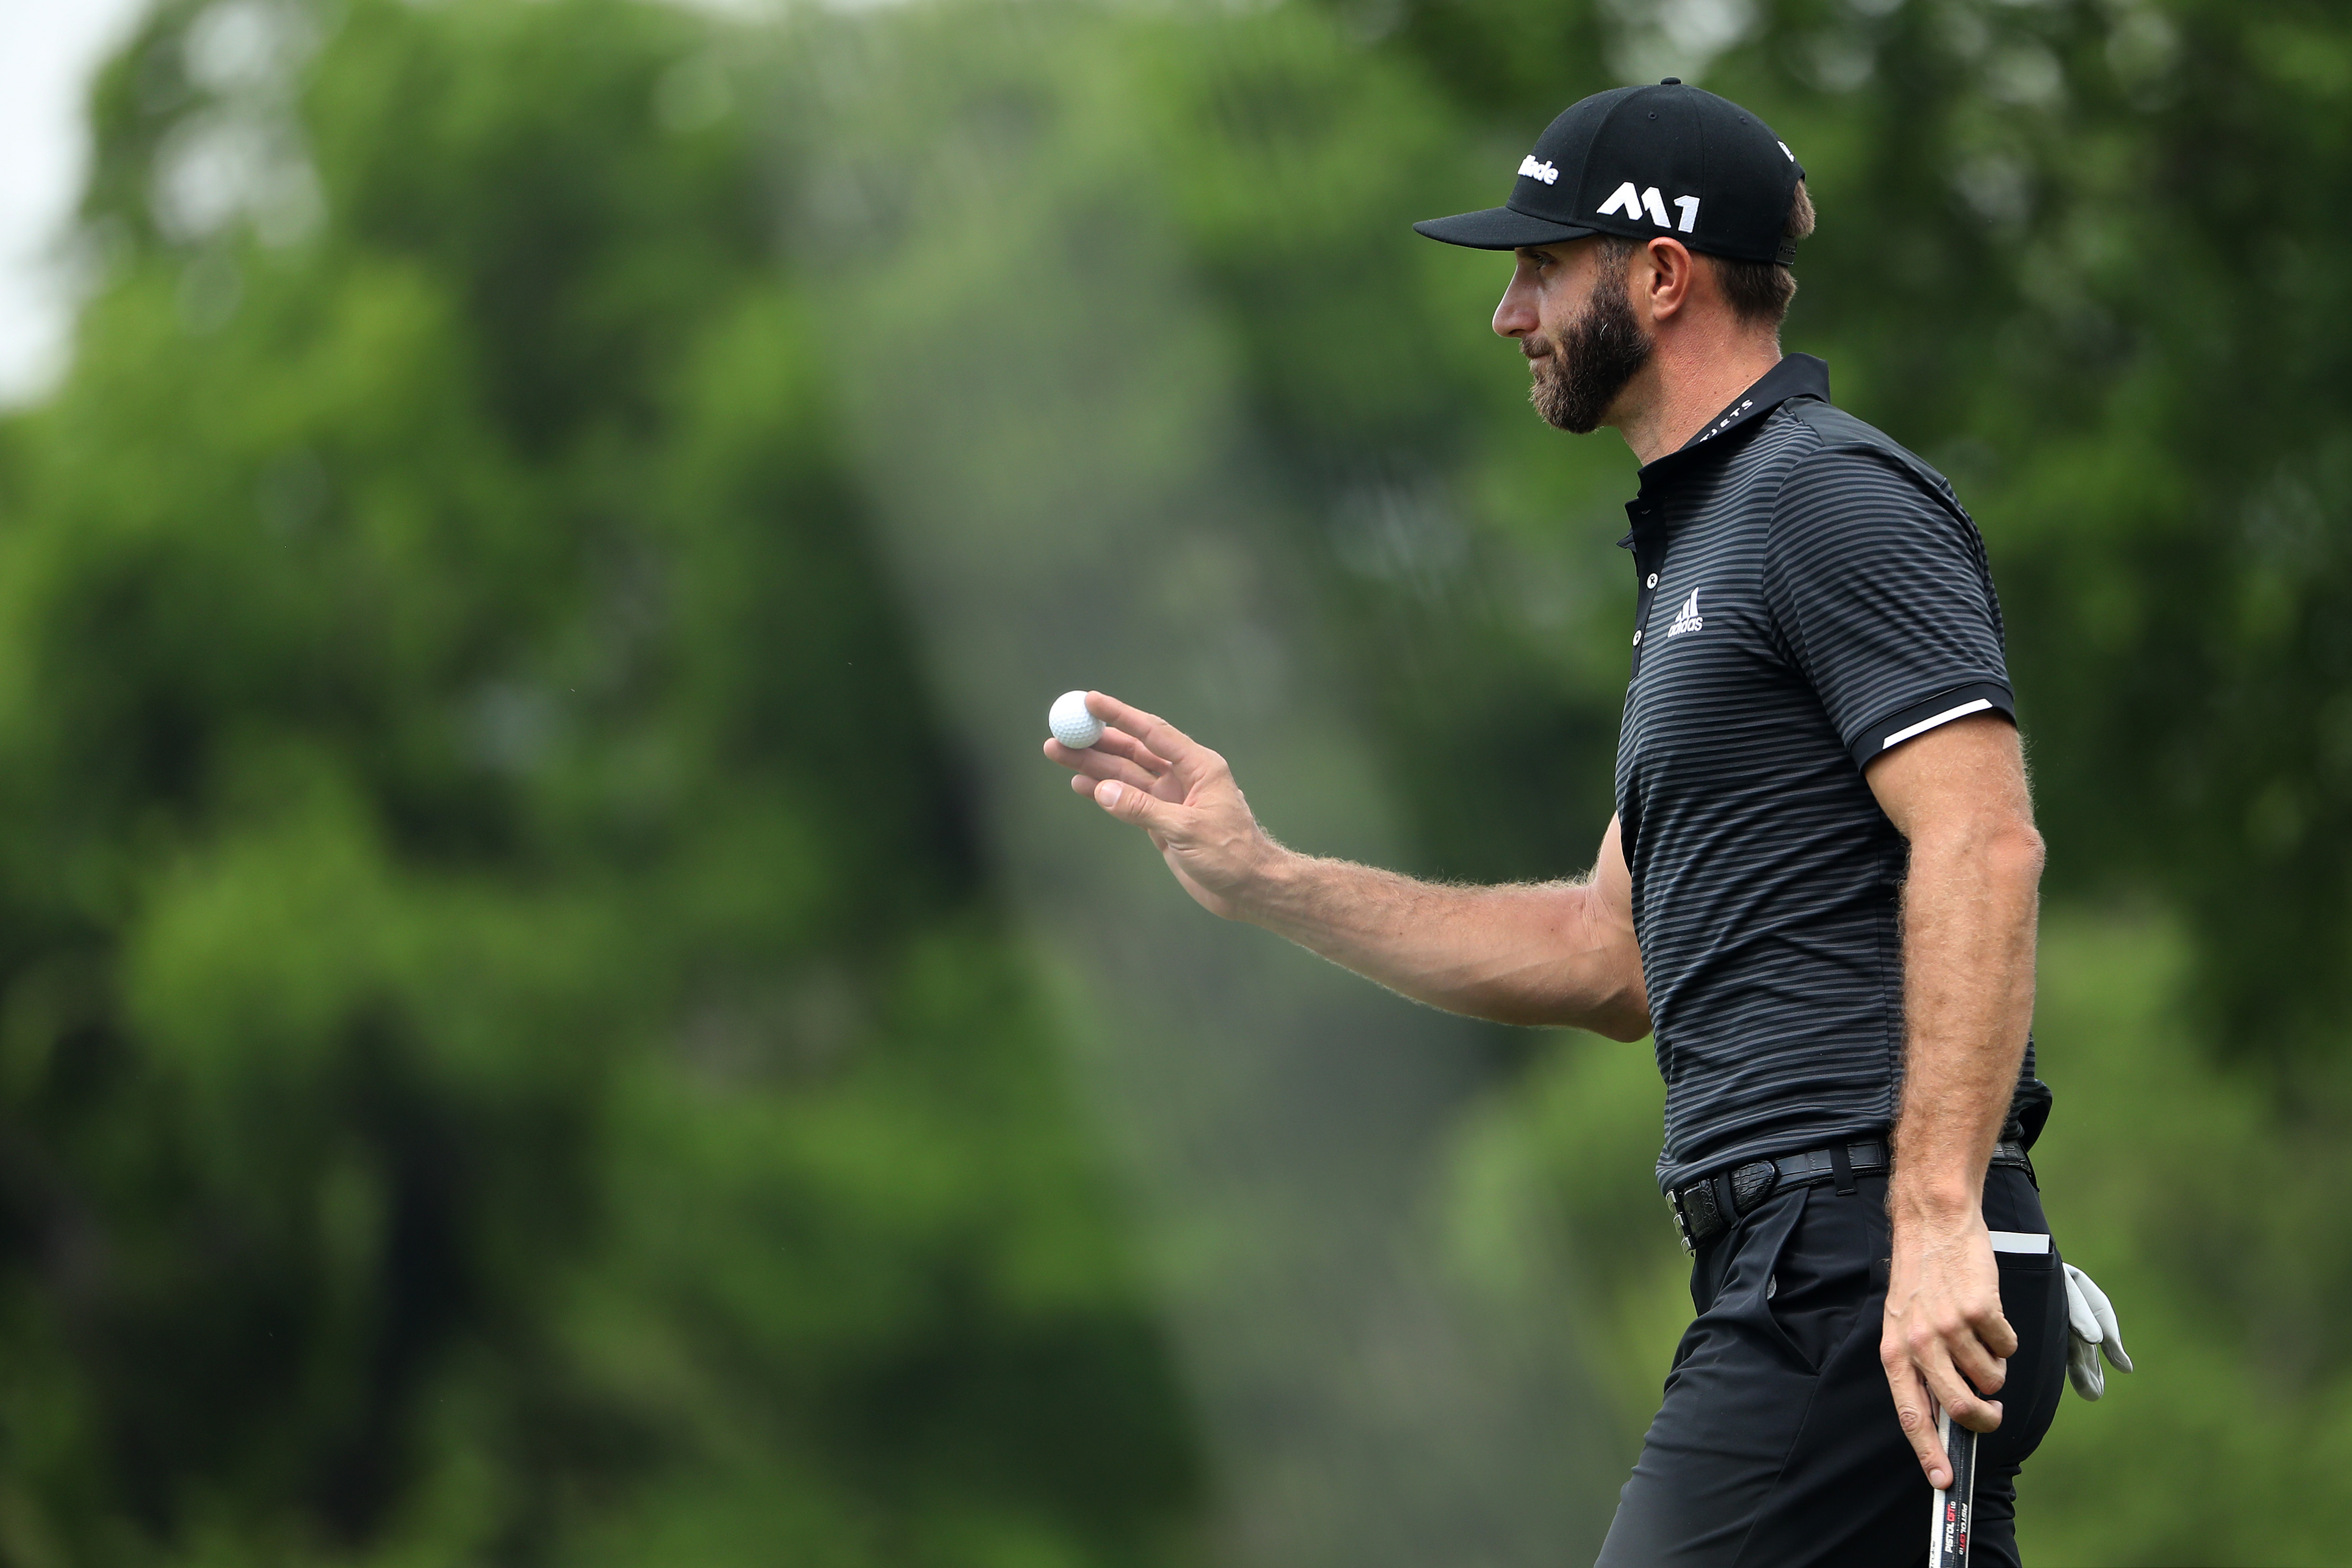 World No. 1 Dustin Johnson has led all 46 holes he has played at this year's Match Play Championship.